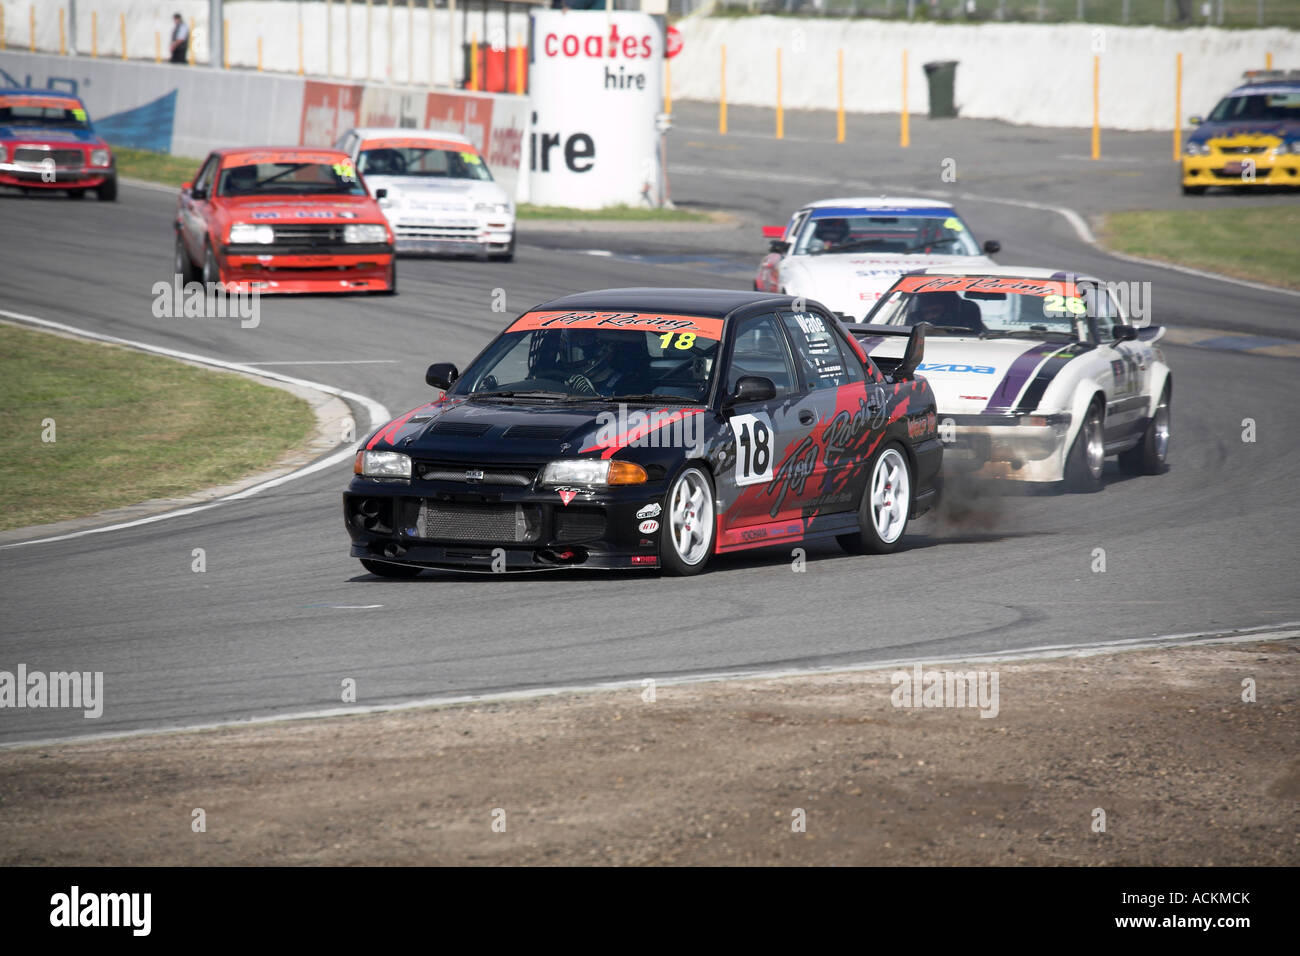 modified Mitsubishi EVO III race car leads the pack into a corner at a circuit racing motorsport event - Stock Image